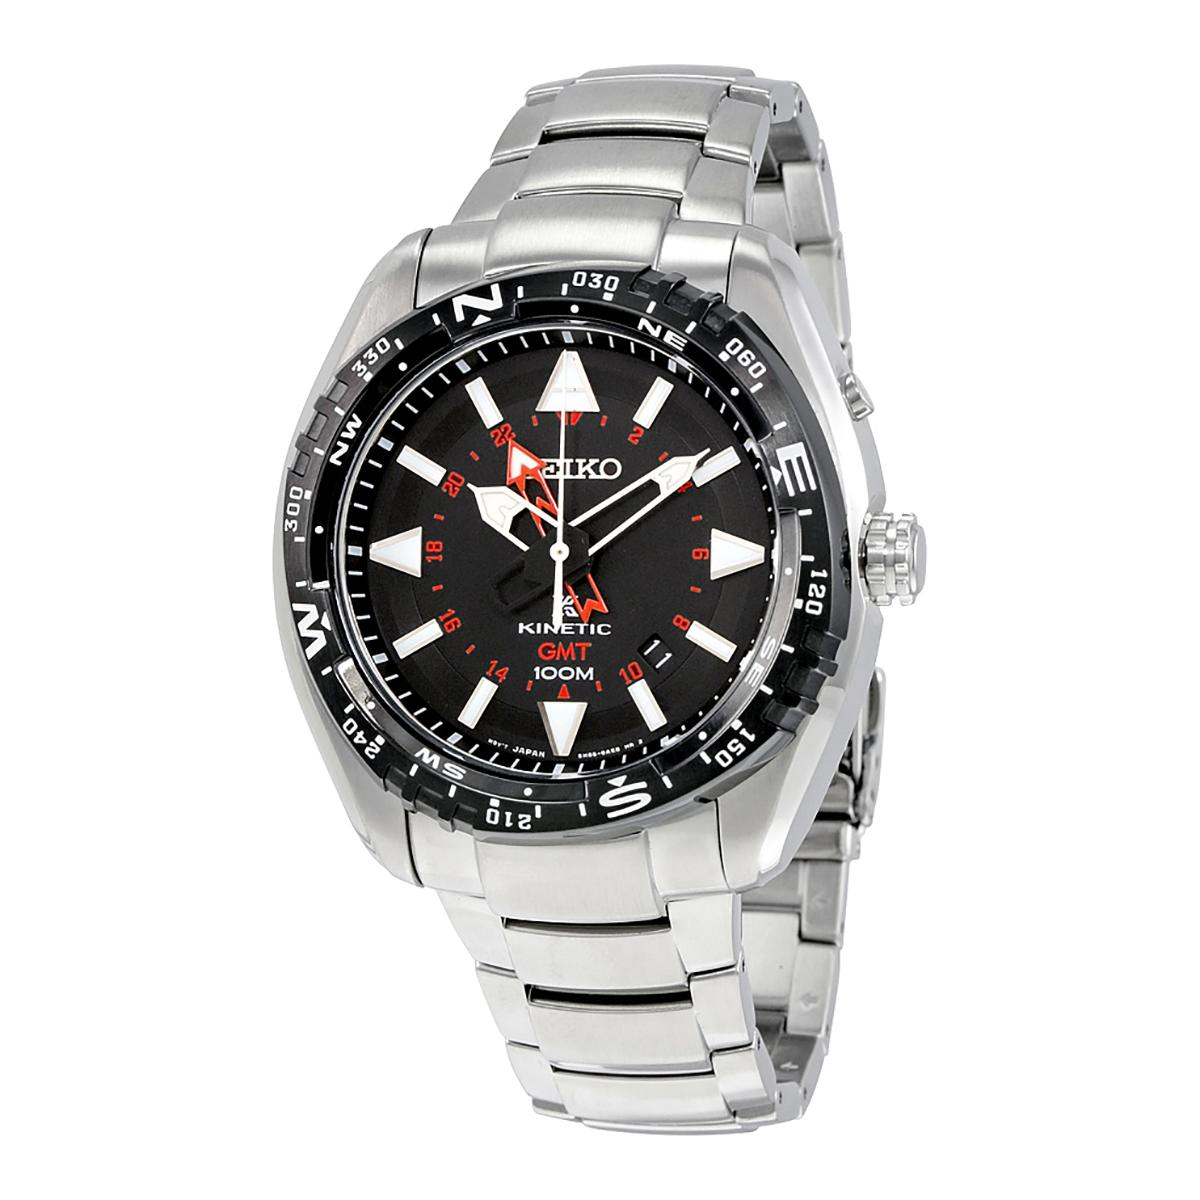 Buy Sell Cheapest Seiko Prospex Sun065p1 Best Quality Product Mini Jam Tangan Pria Silver Stainless Steel 01s Kinetic Case Bracelet Mens Nwt